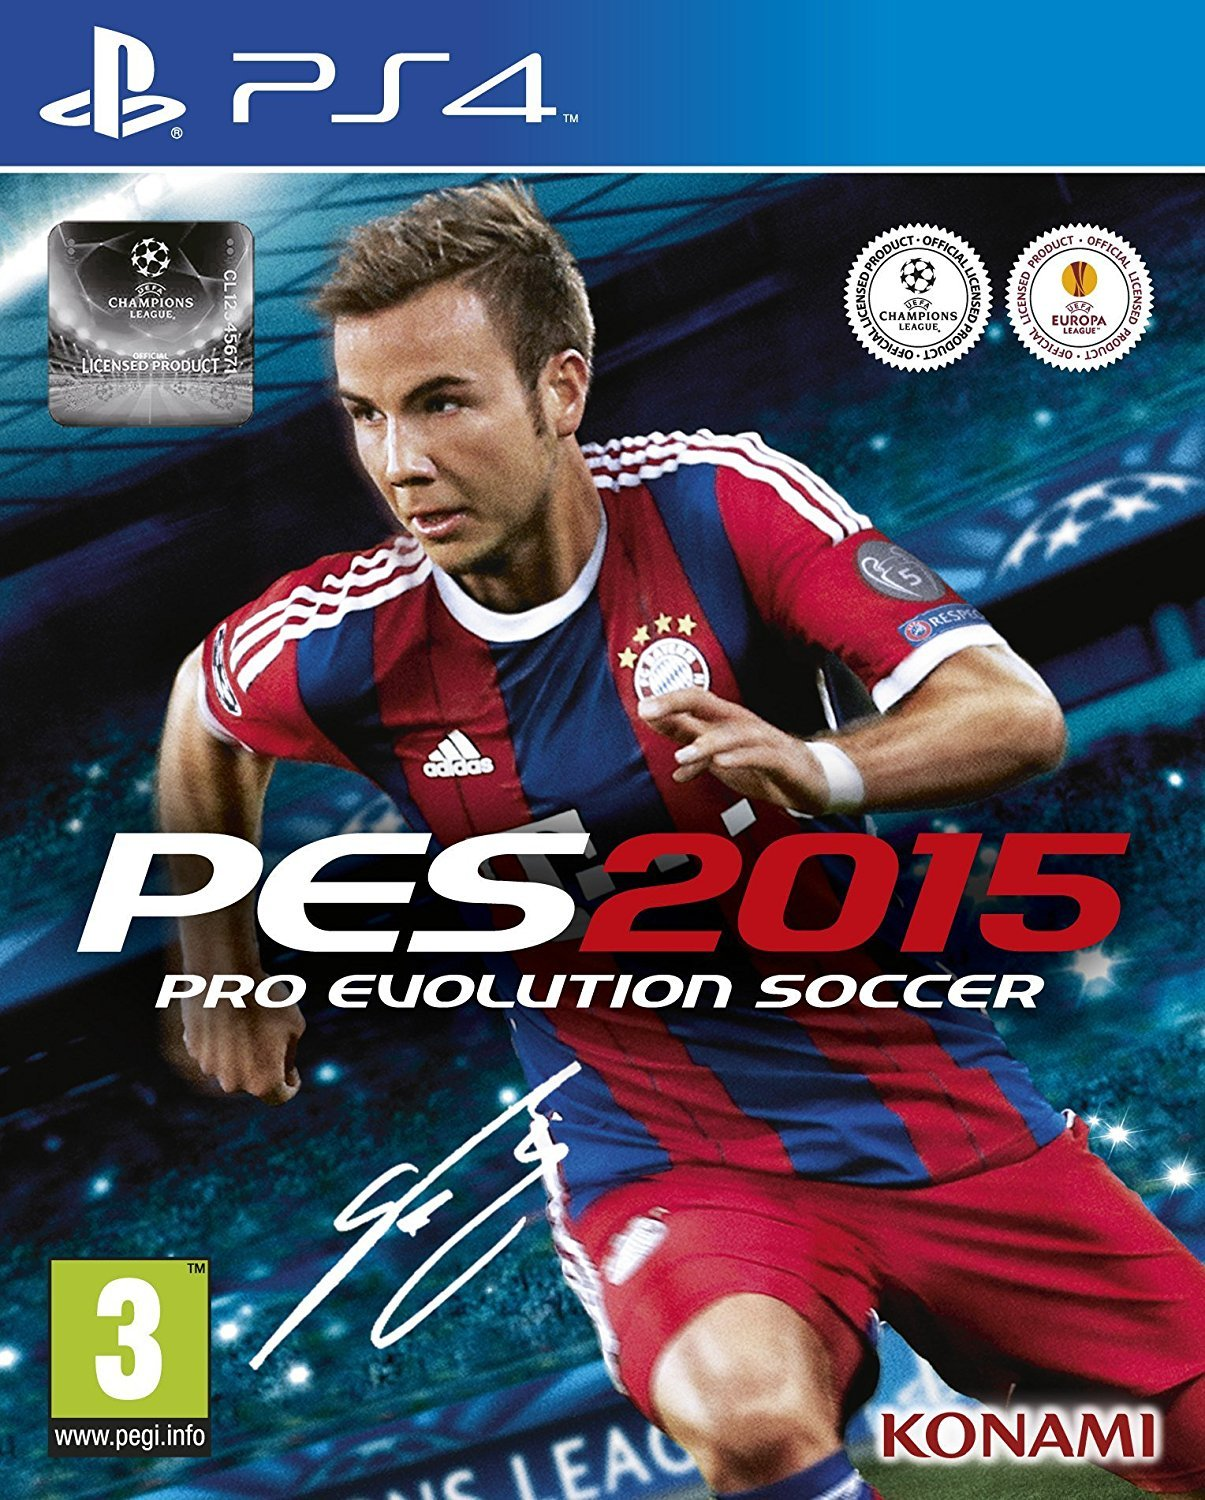 Pro Evolution Soccer 2015 (PS4): Playstation 4: Computer and